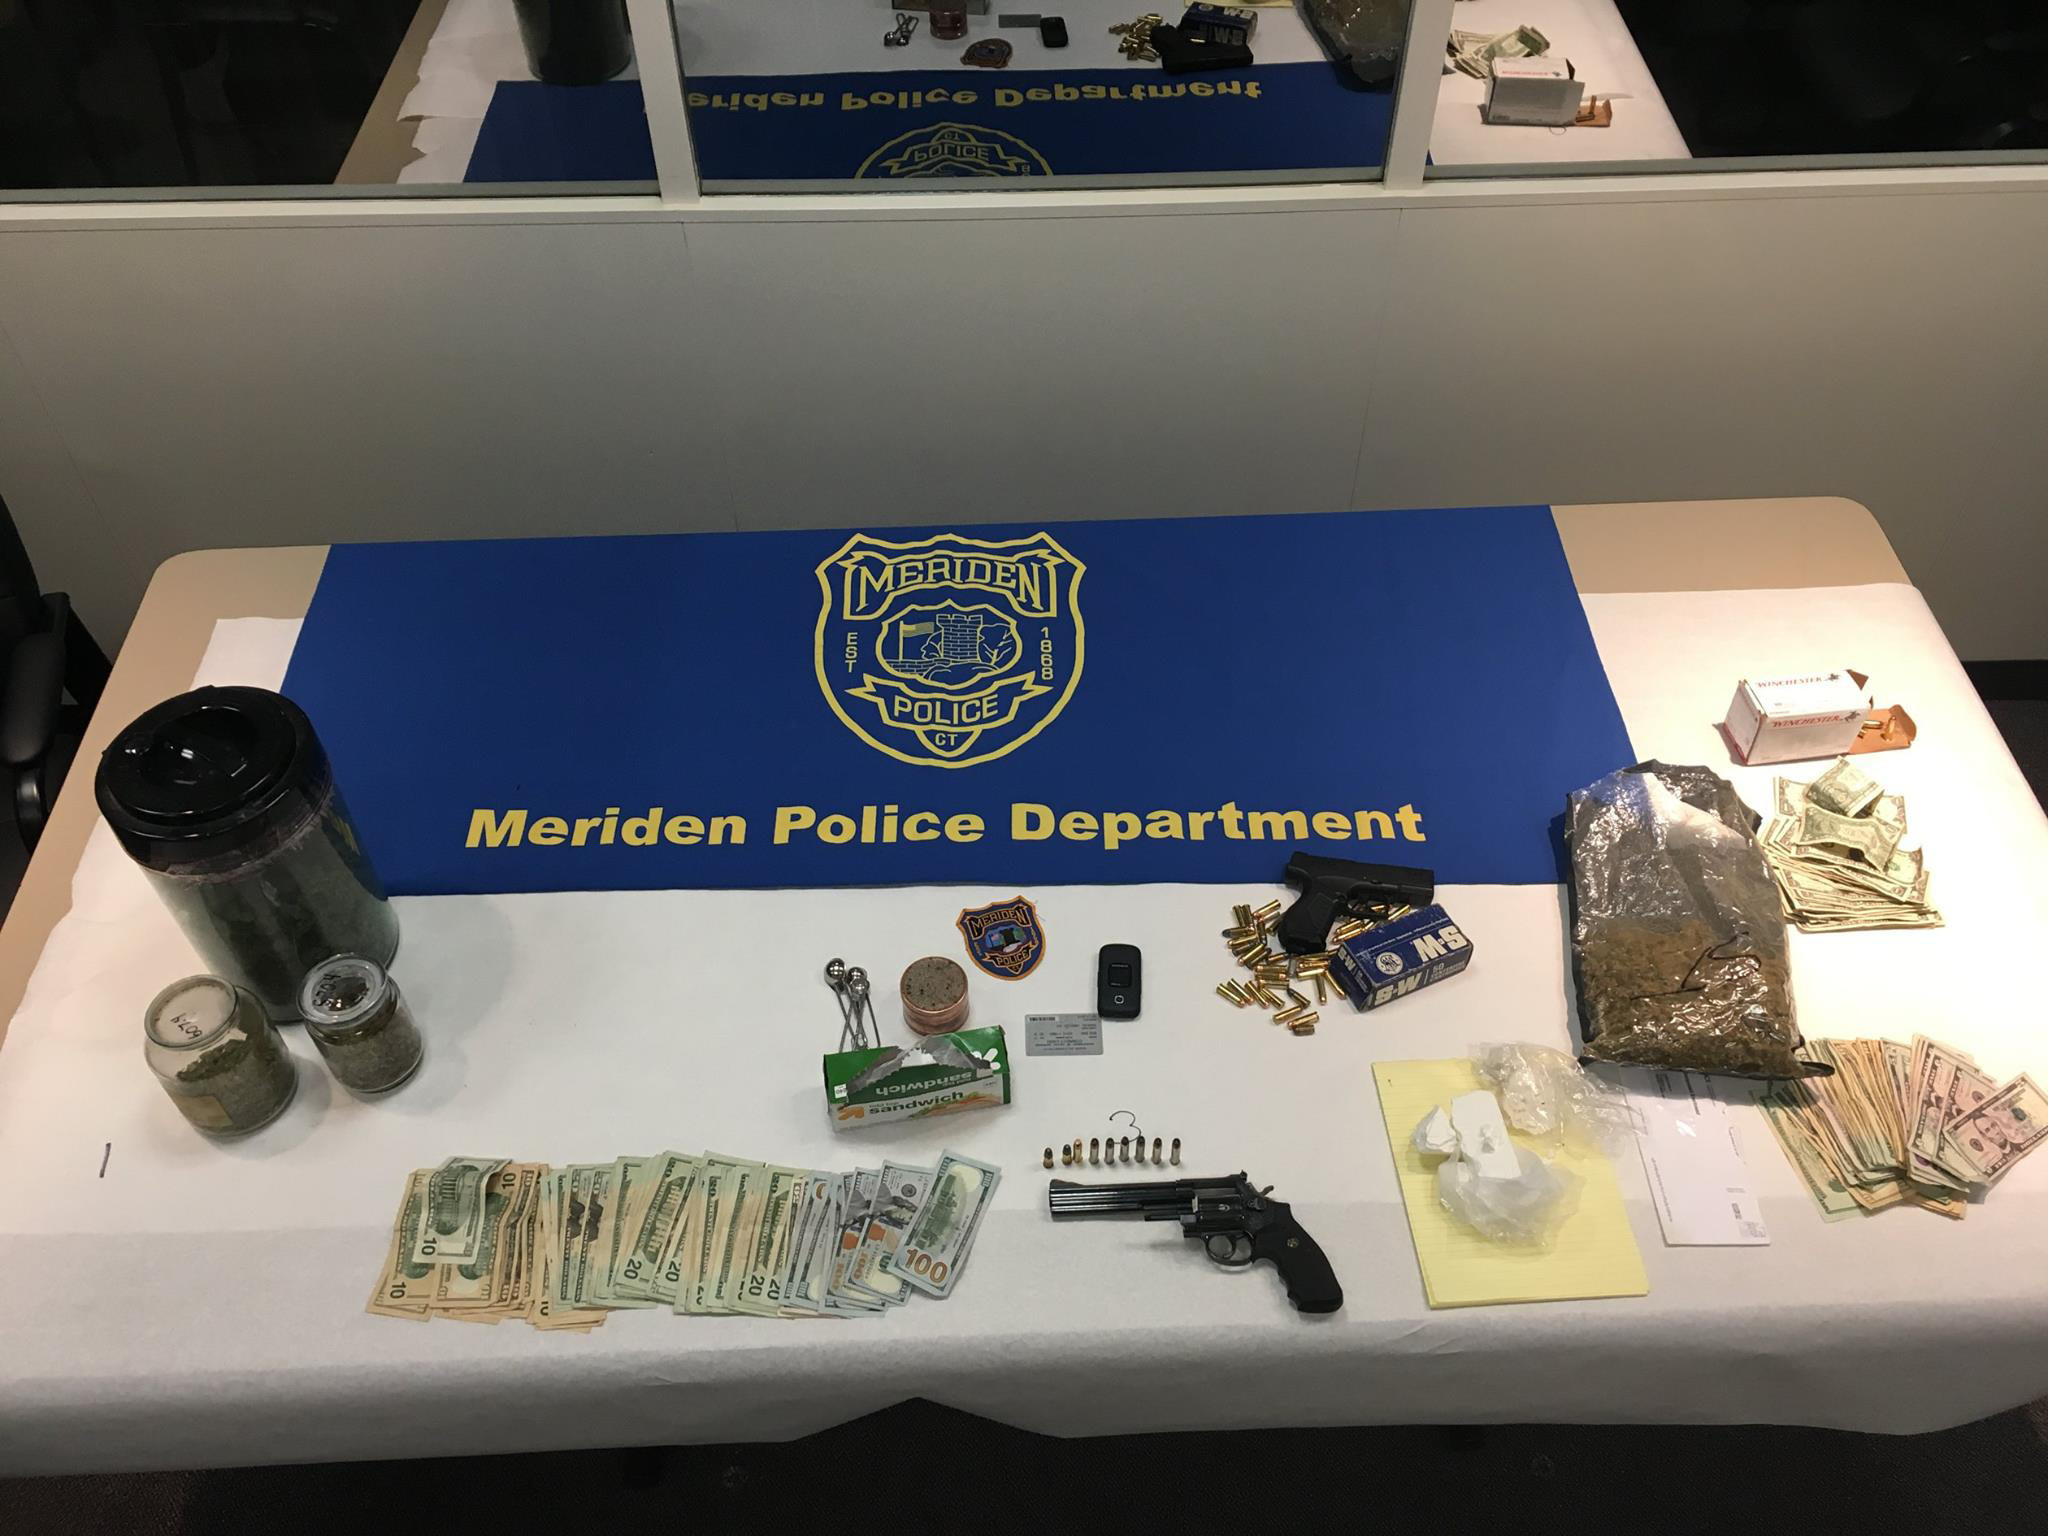 FILE PHOTO -- Drugs and other property seized during an investigation by Meriden police.